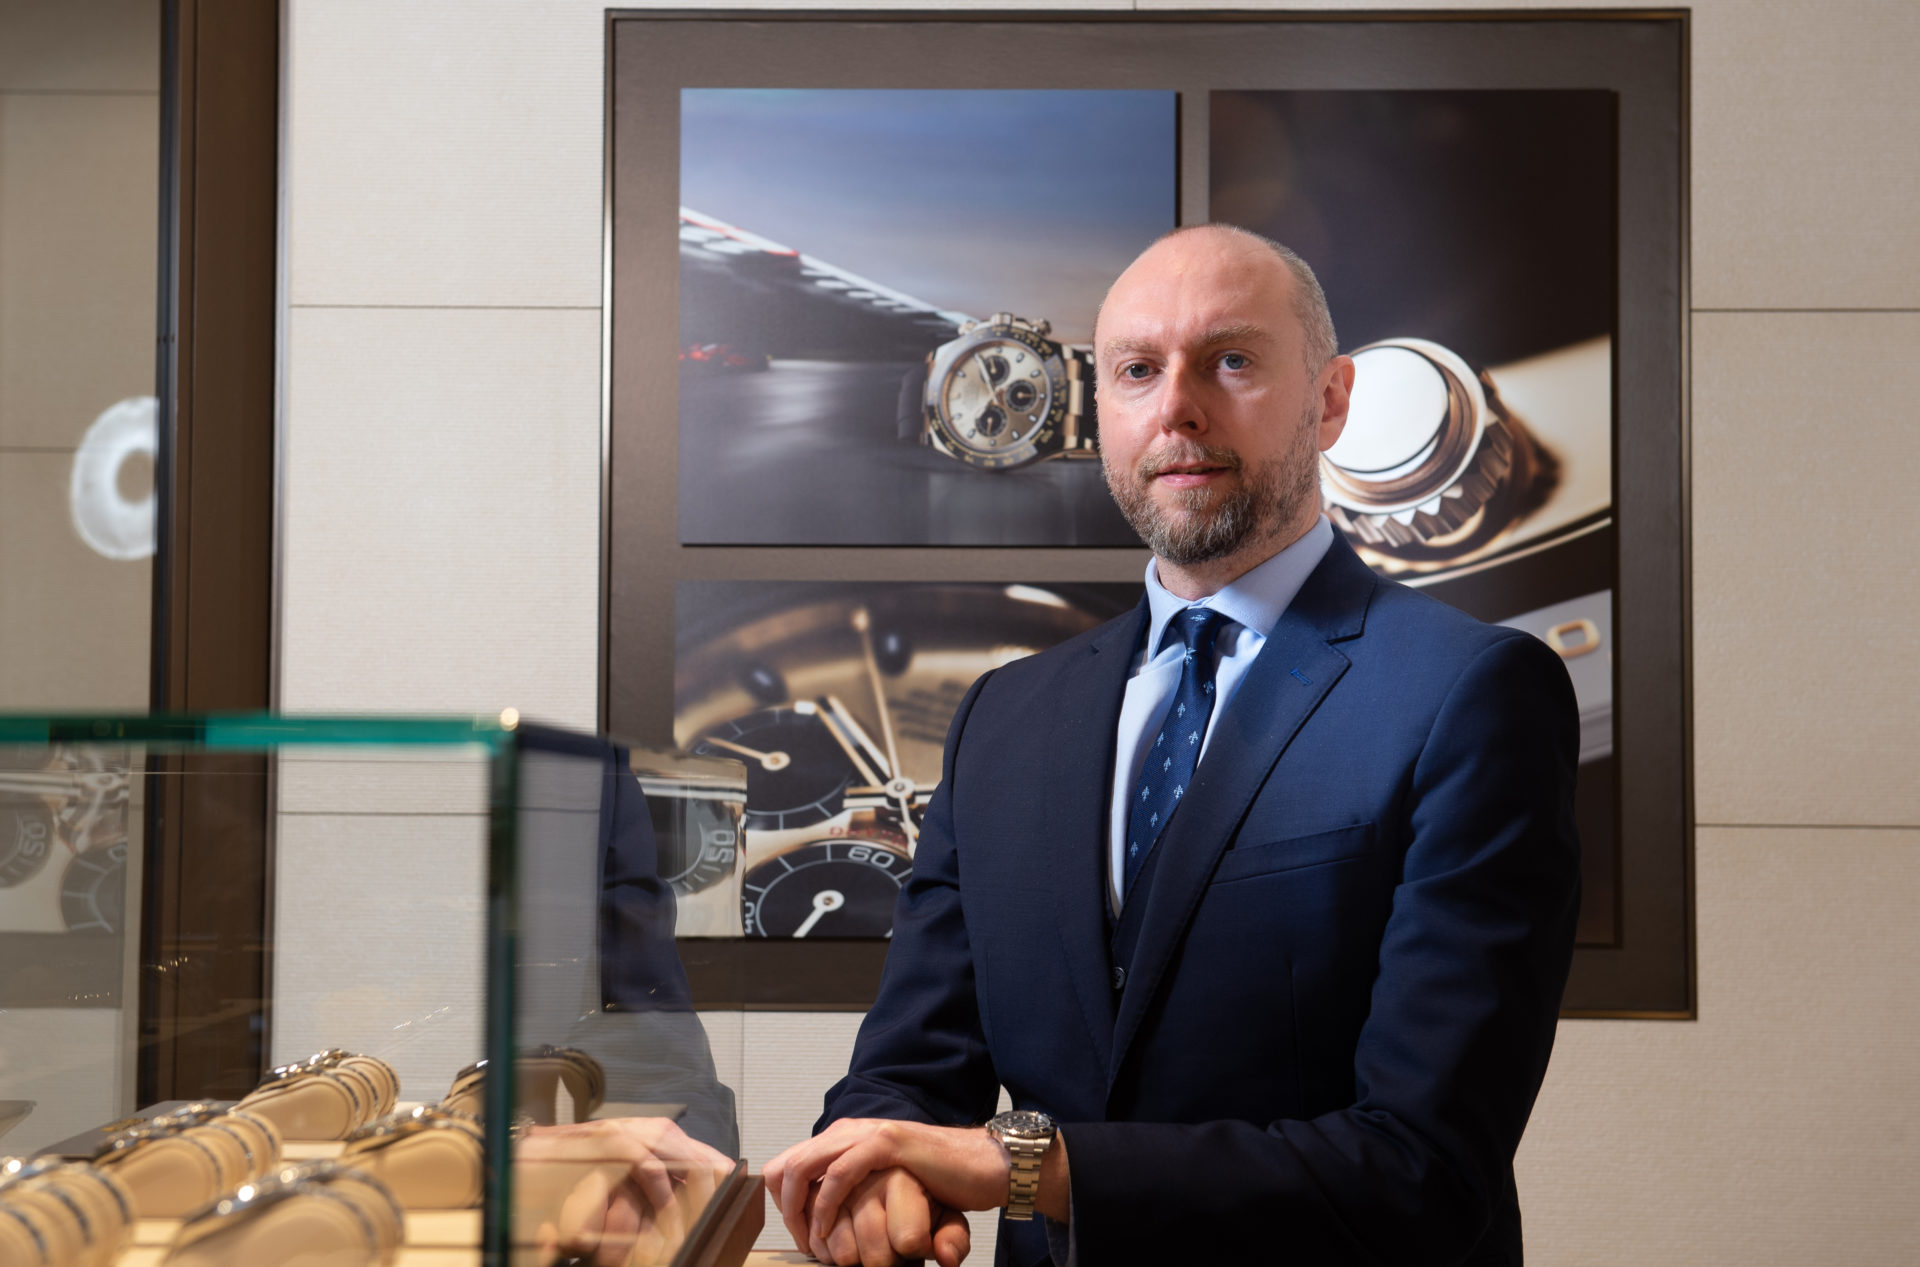 WATCHES OF SWITZERLAND GROUP SCOTLAND'S FIRST DEDICATED ROLEX BOUTIQUE IN GLASGOW.